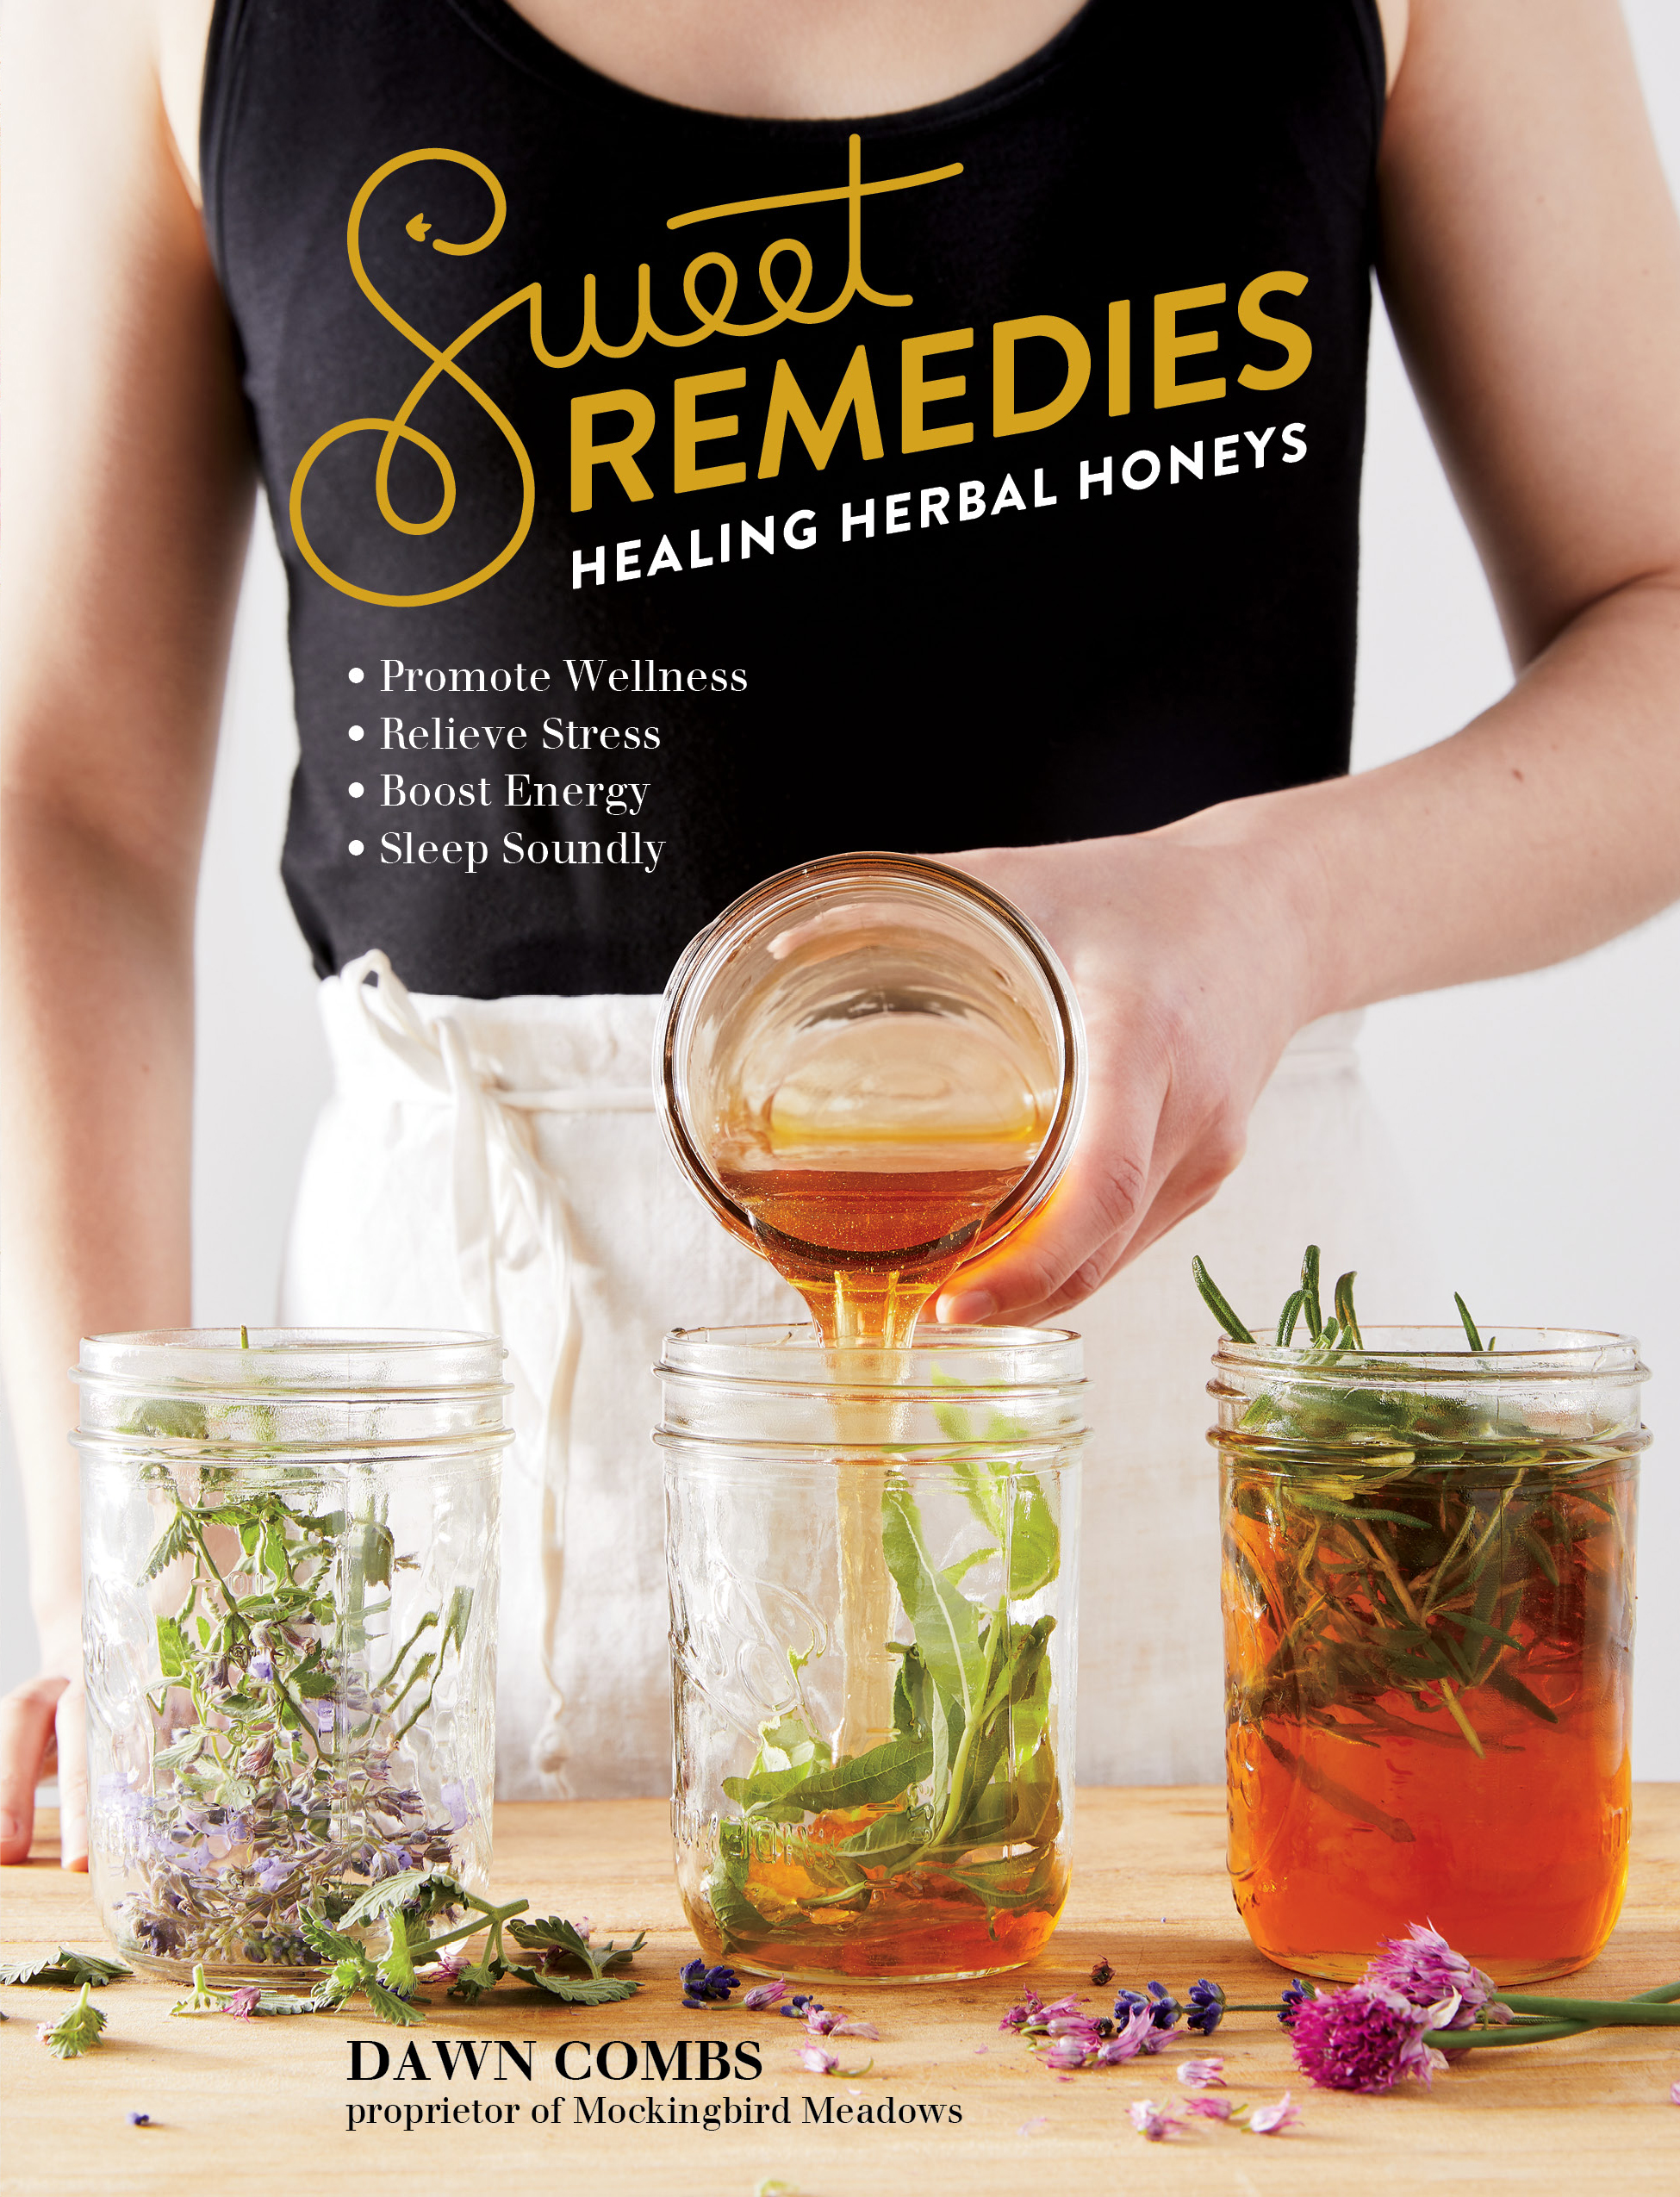 Sweet Remedies Healing Herbal Honeys - Dawn Combs